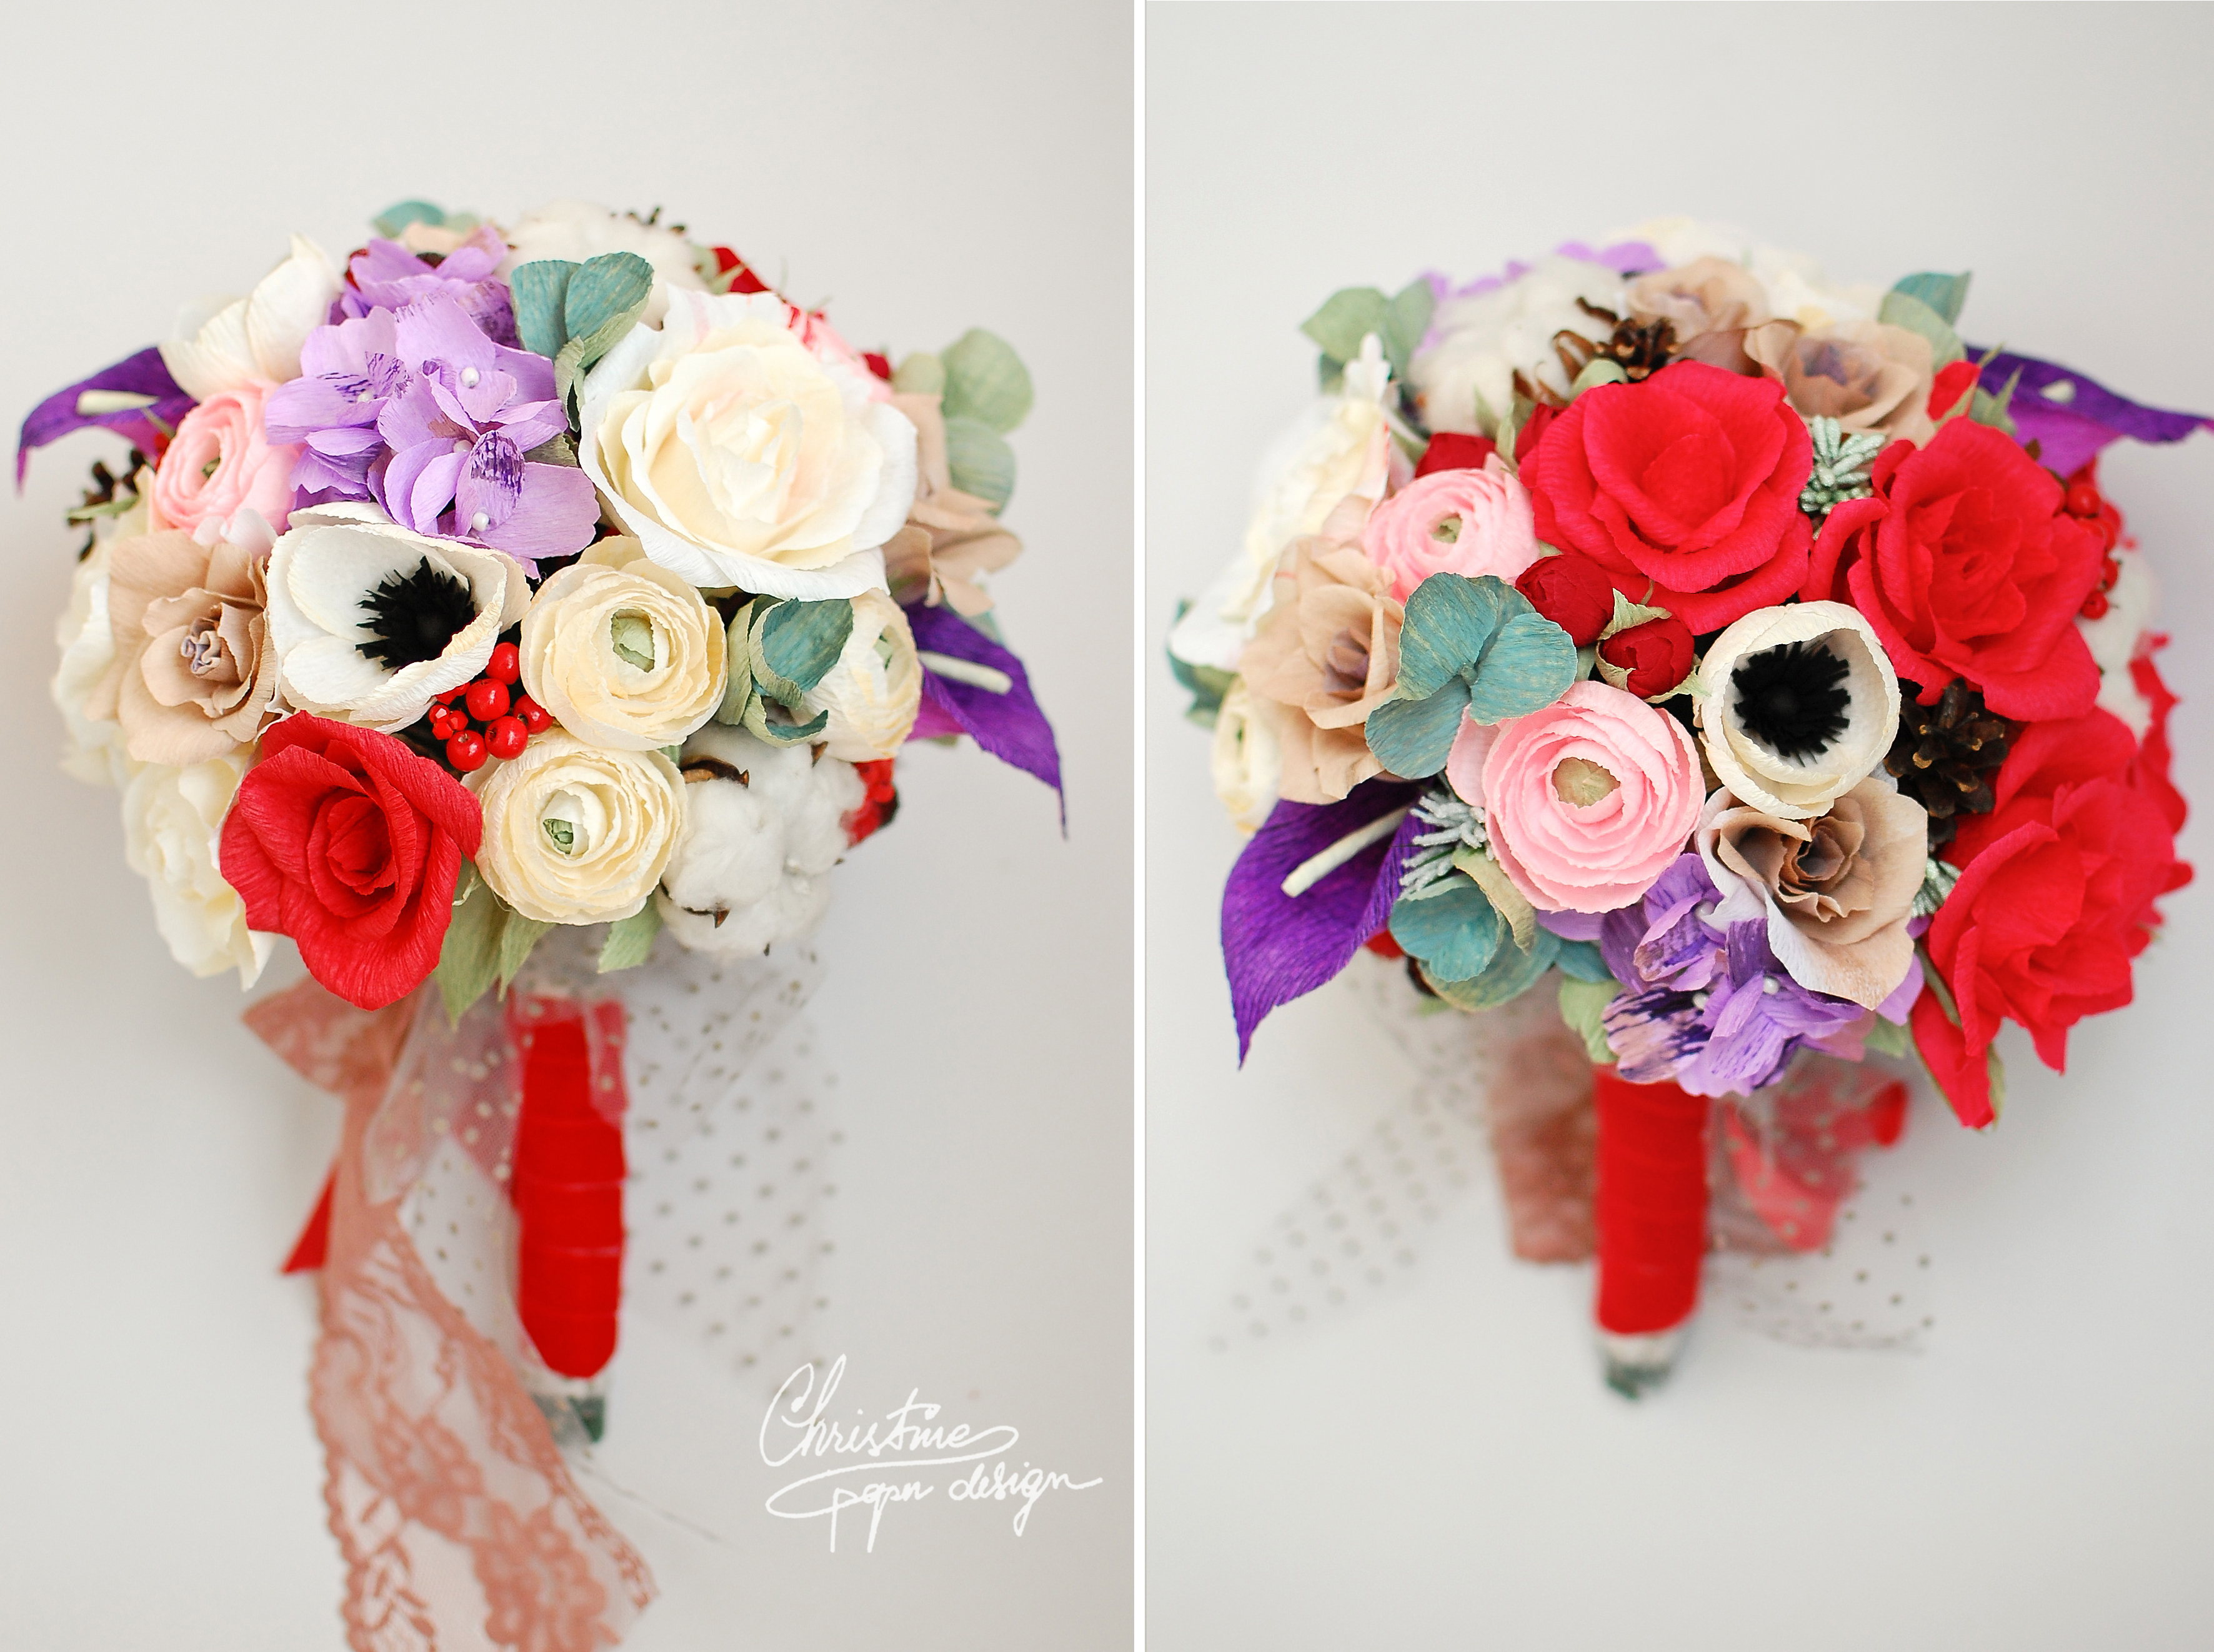 Christine paper design - paper flowers (5)